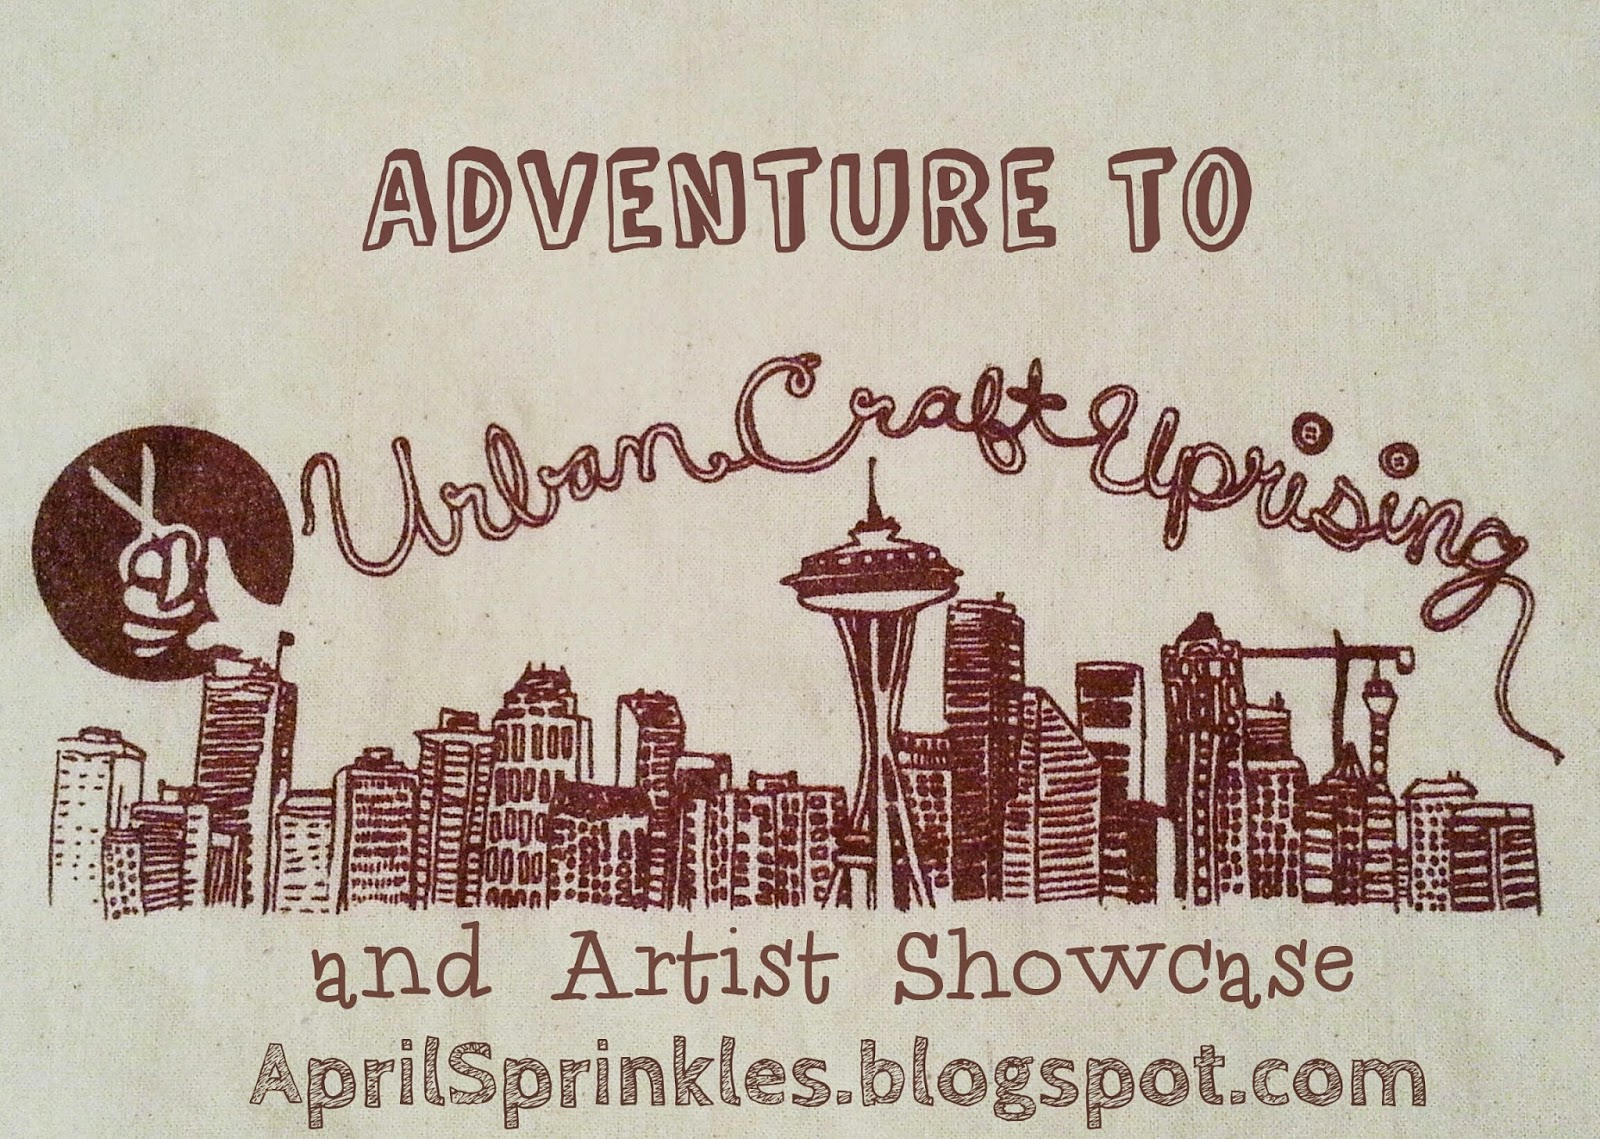 Seattle Urban Craft Uprising Artist Showcase by April Sprinkles